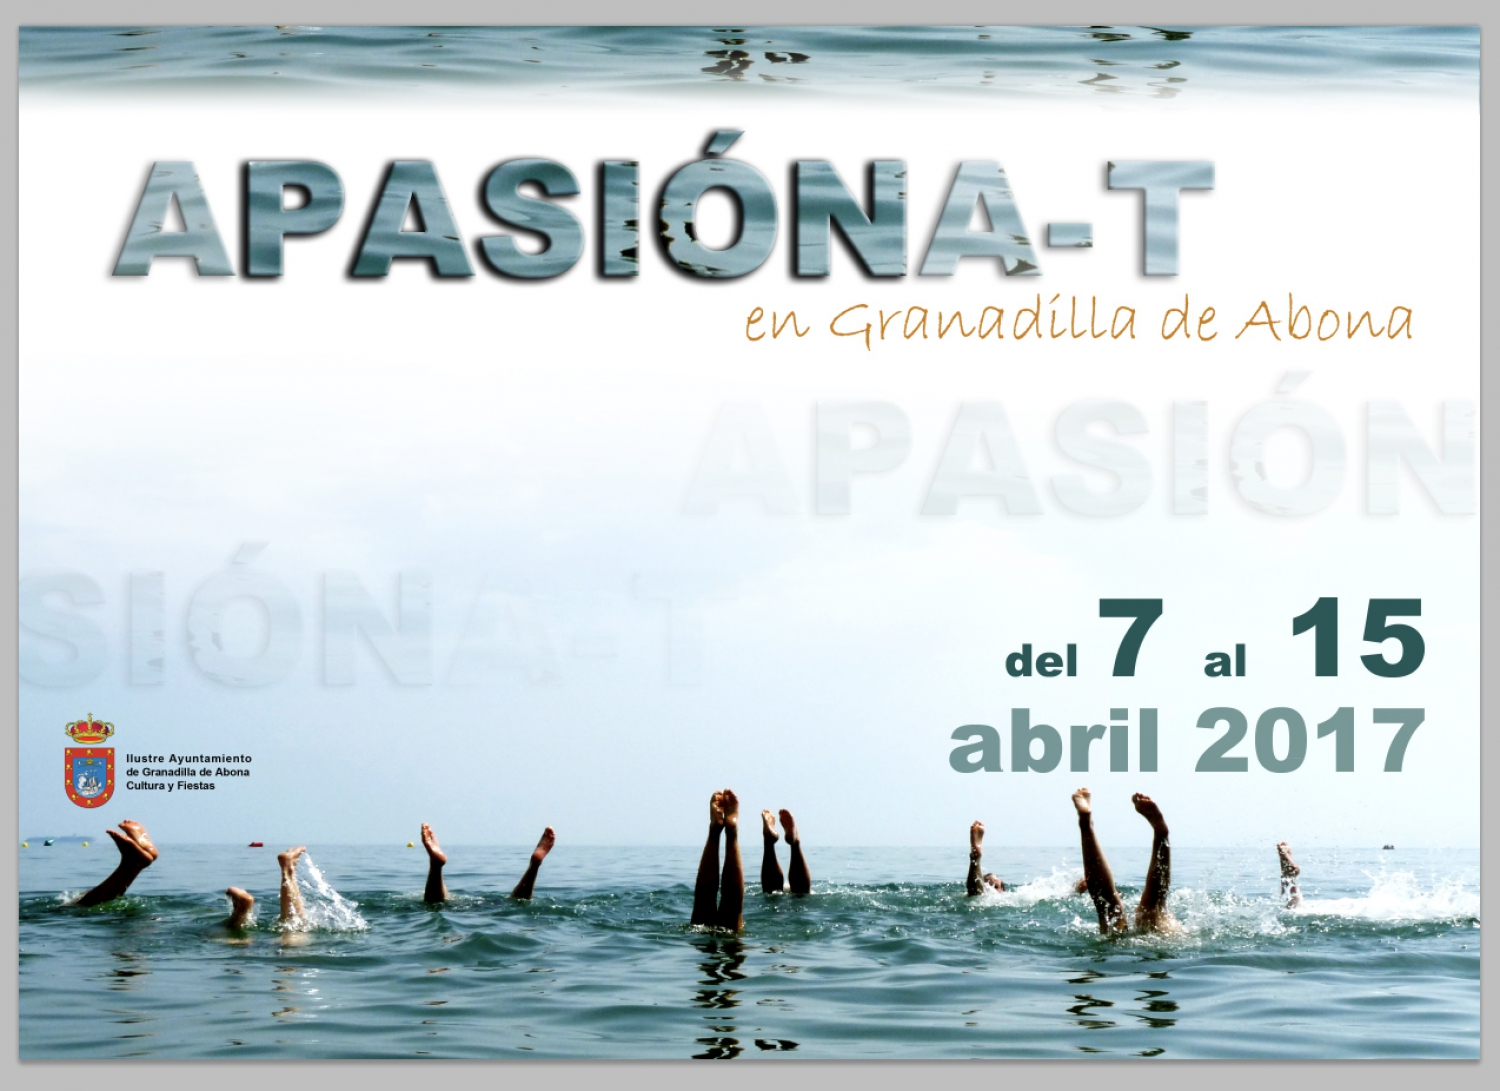 Apasionate Cultural Week in Granadilla